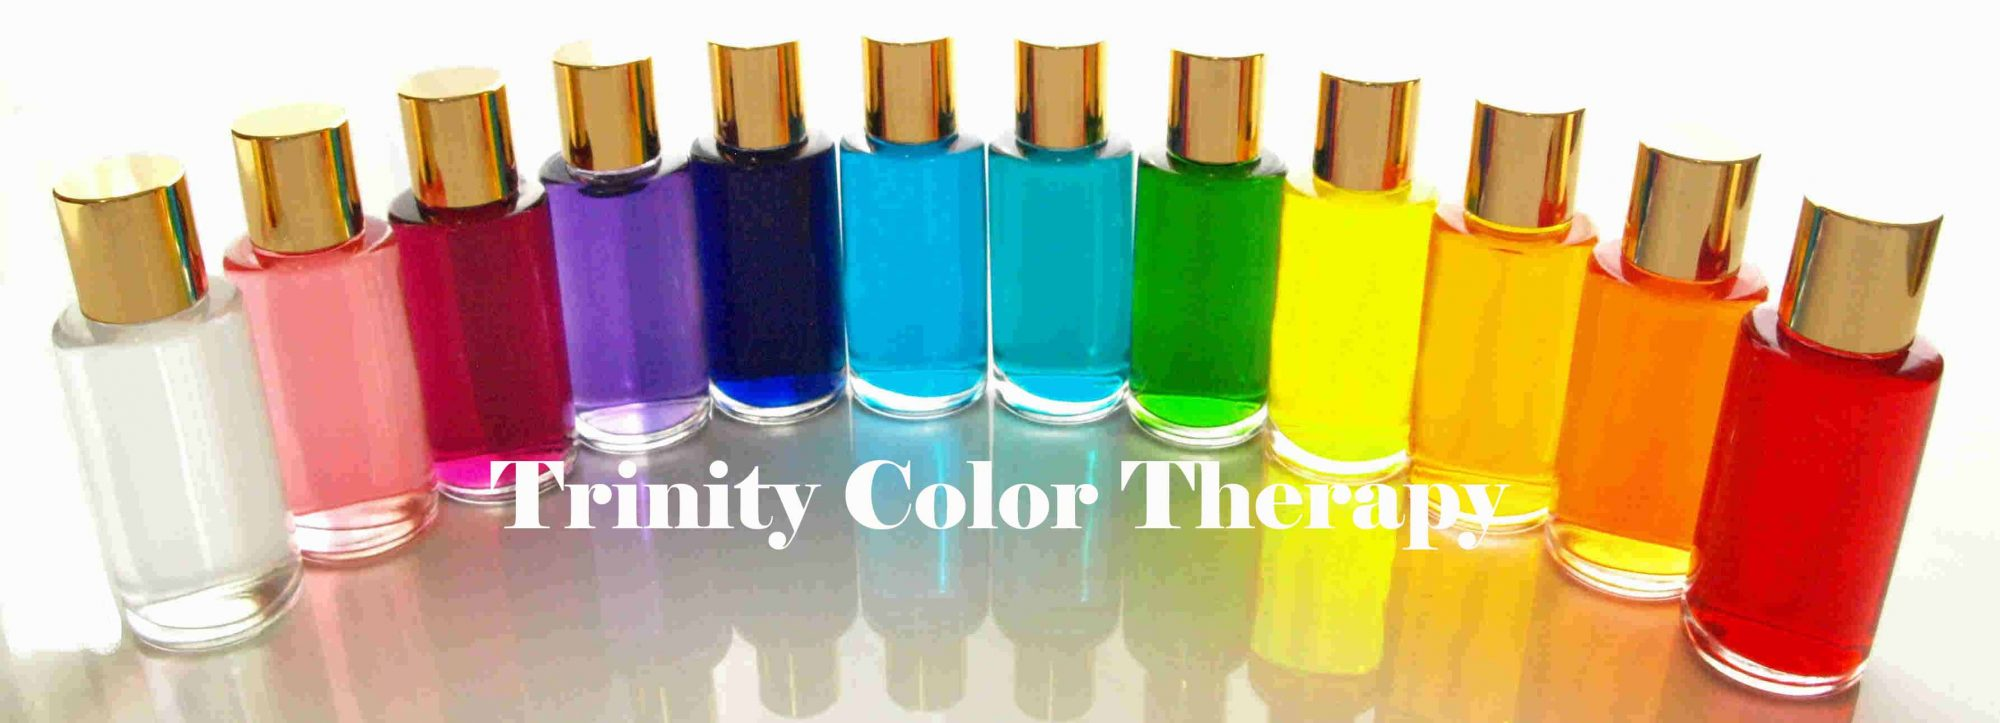 TRINITY Color Therapy